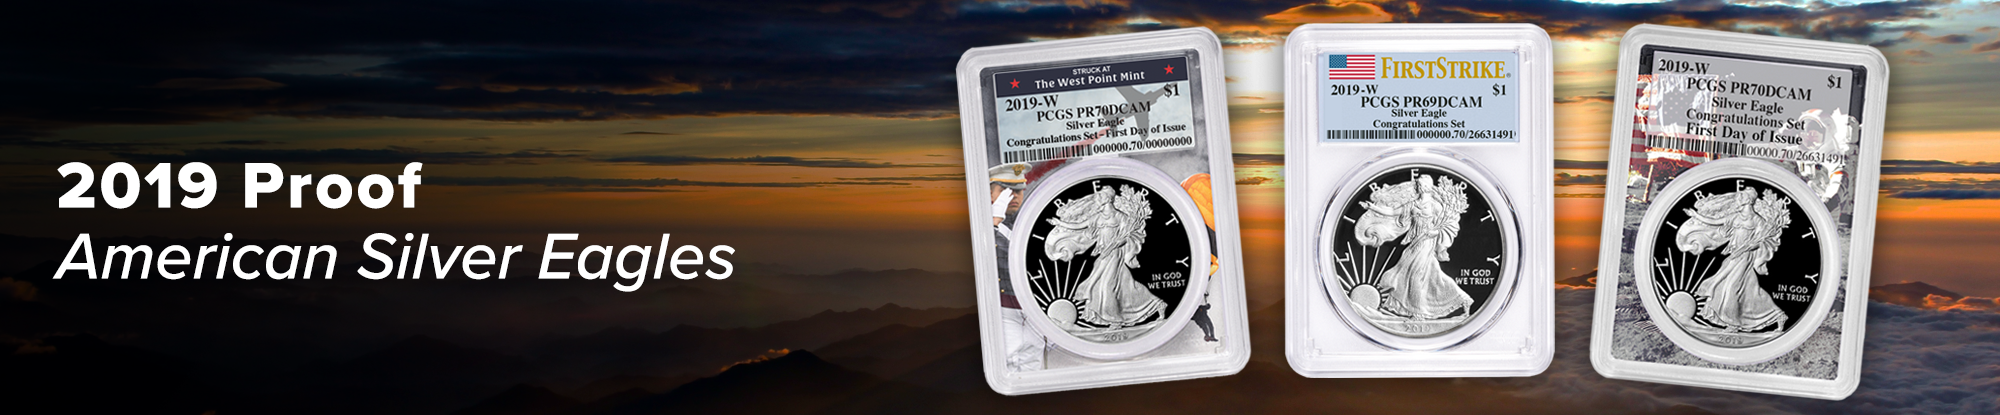 2019 Proof American Silver Eagles